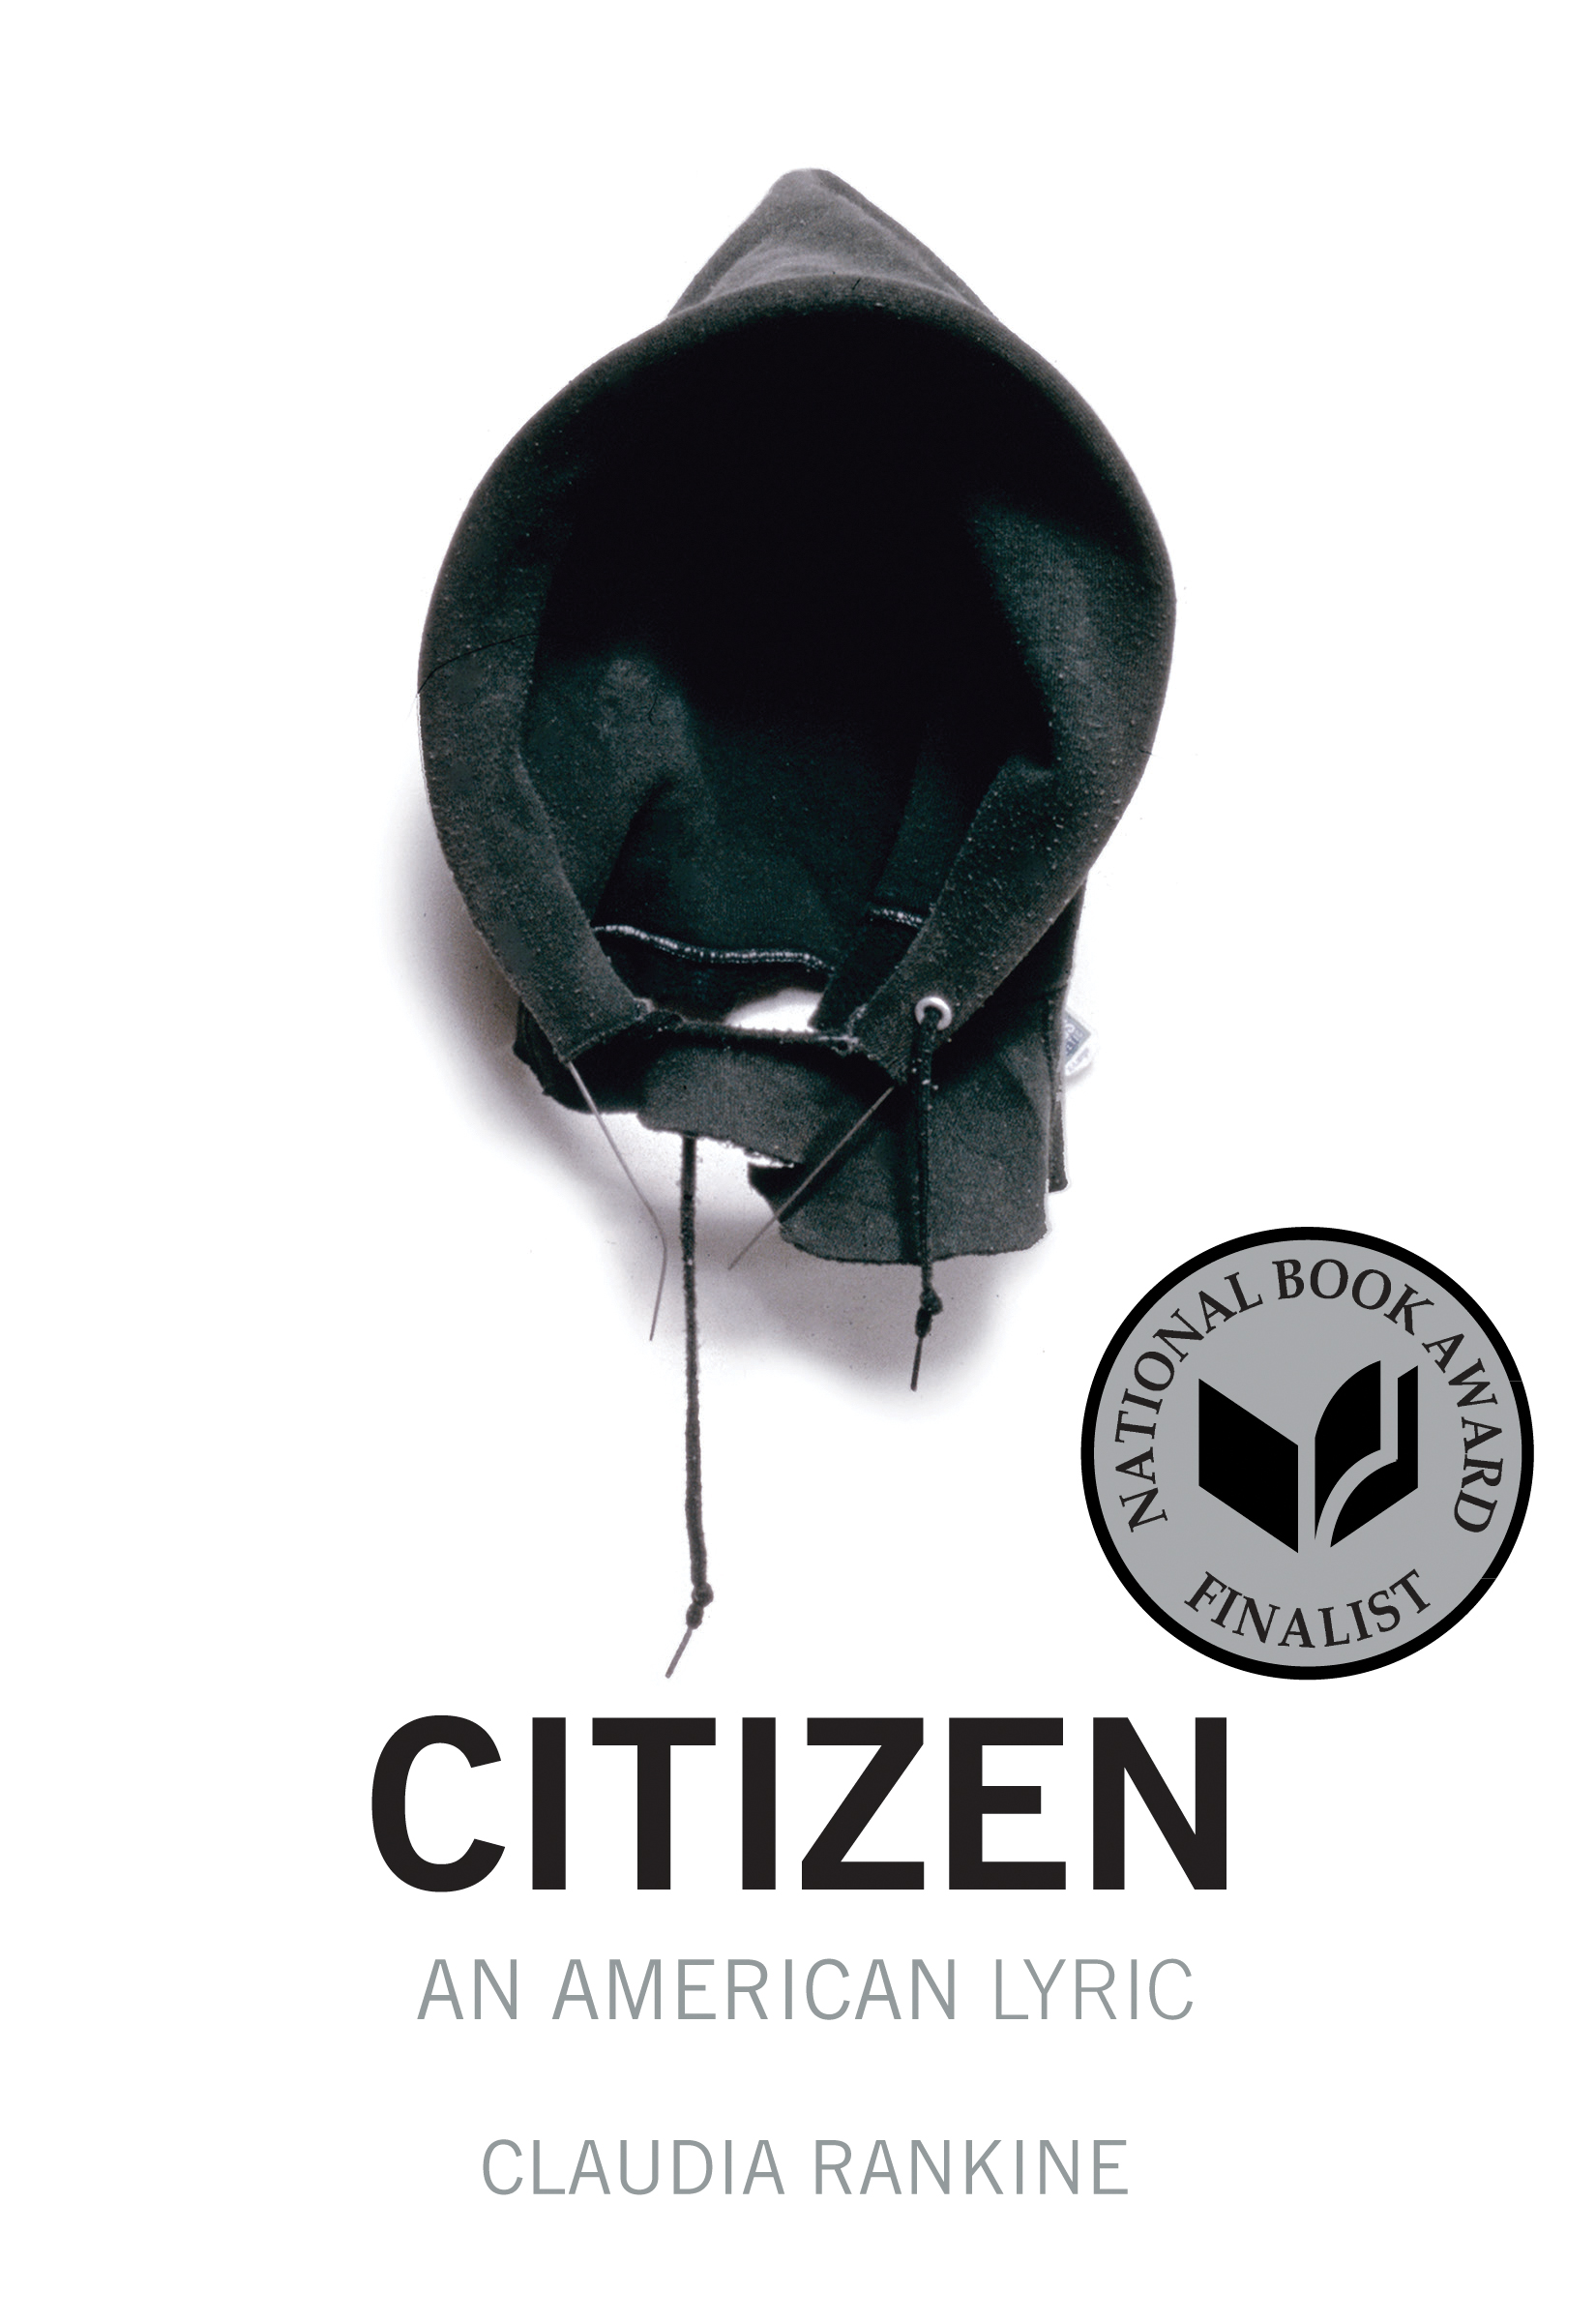 Claudia Rankine 'Citizen: An American Lyric' Book Cover